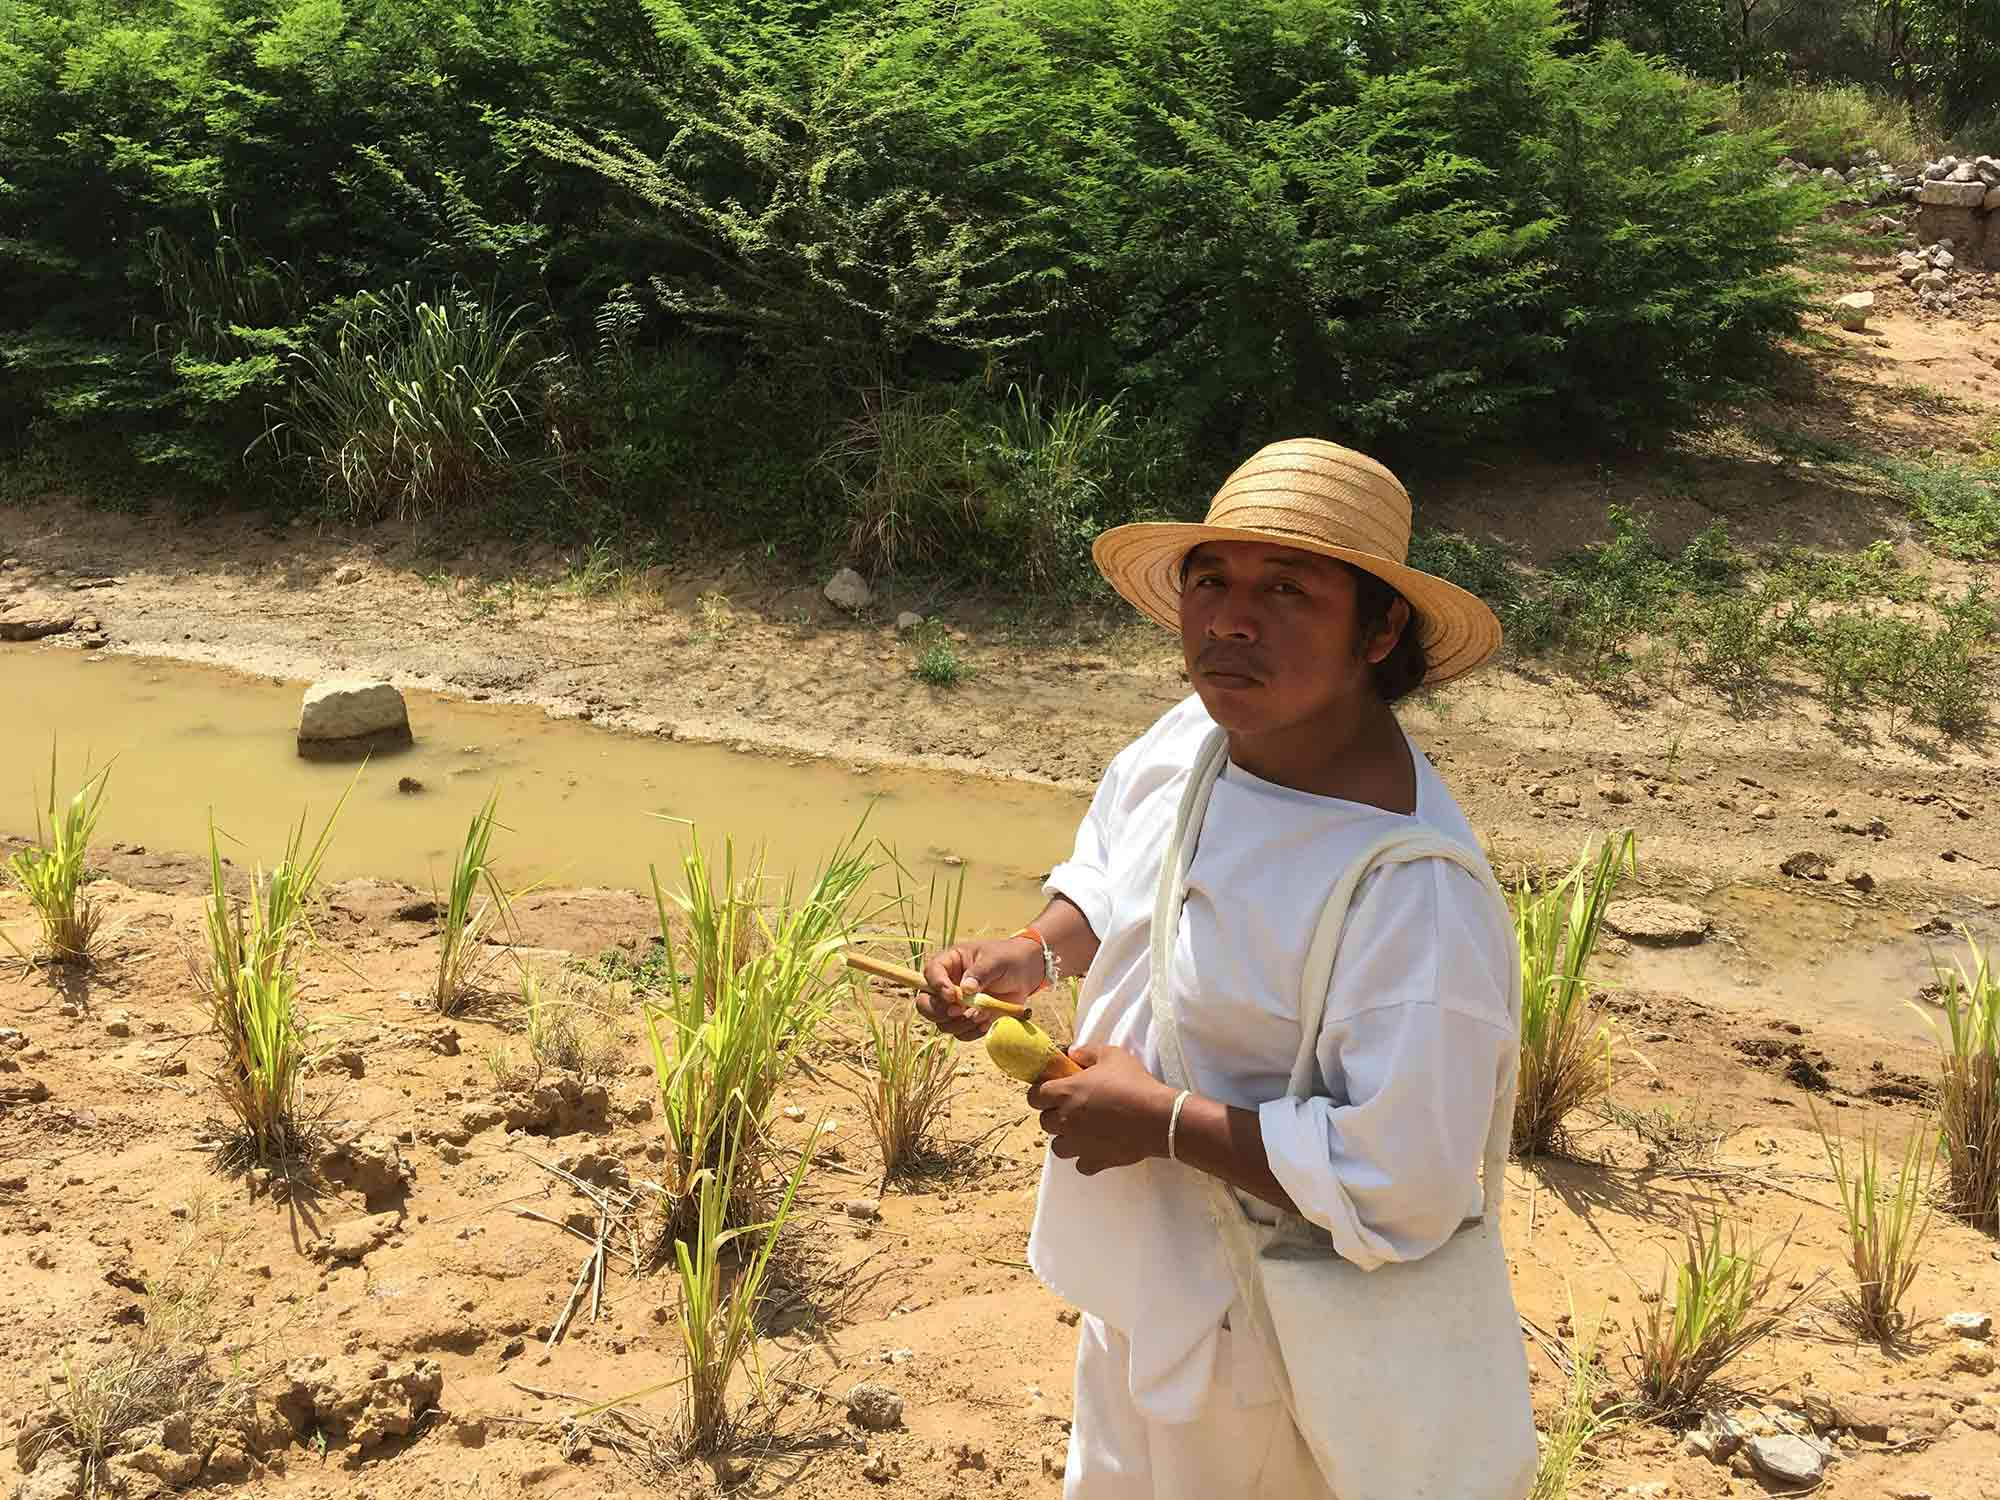 Ni con el Bruno, ni con ninguno / A member of the Wiwa indigenous people walks though the new bed of the diverted River Bruno, in solidarity with the Wayuu indigenous people affected by coal mining in La Guajira, Colombia (diana.salazar@ucl.ac.uk)